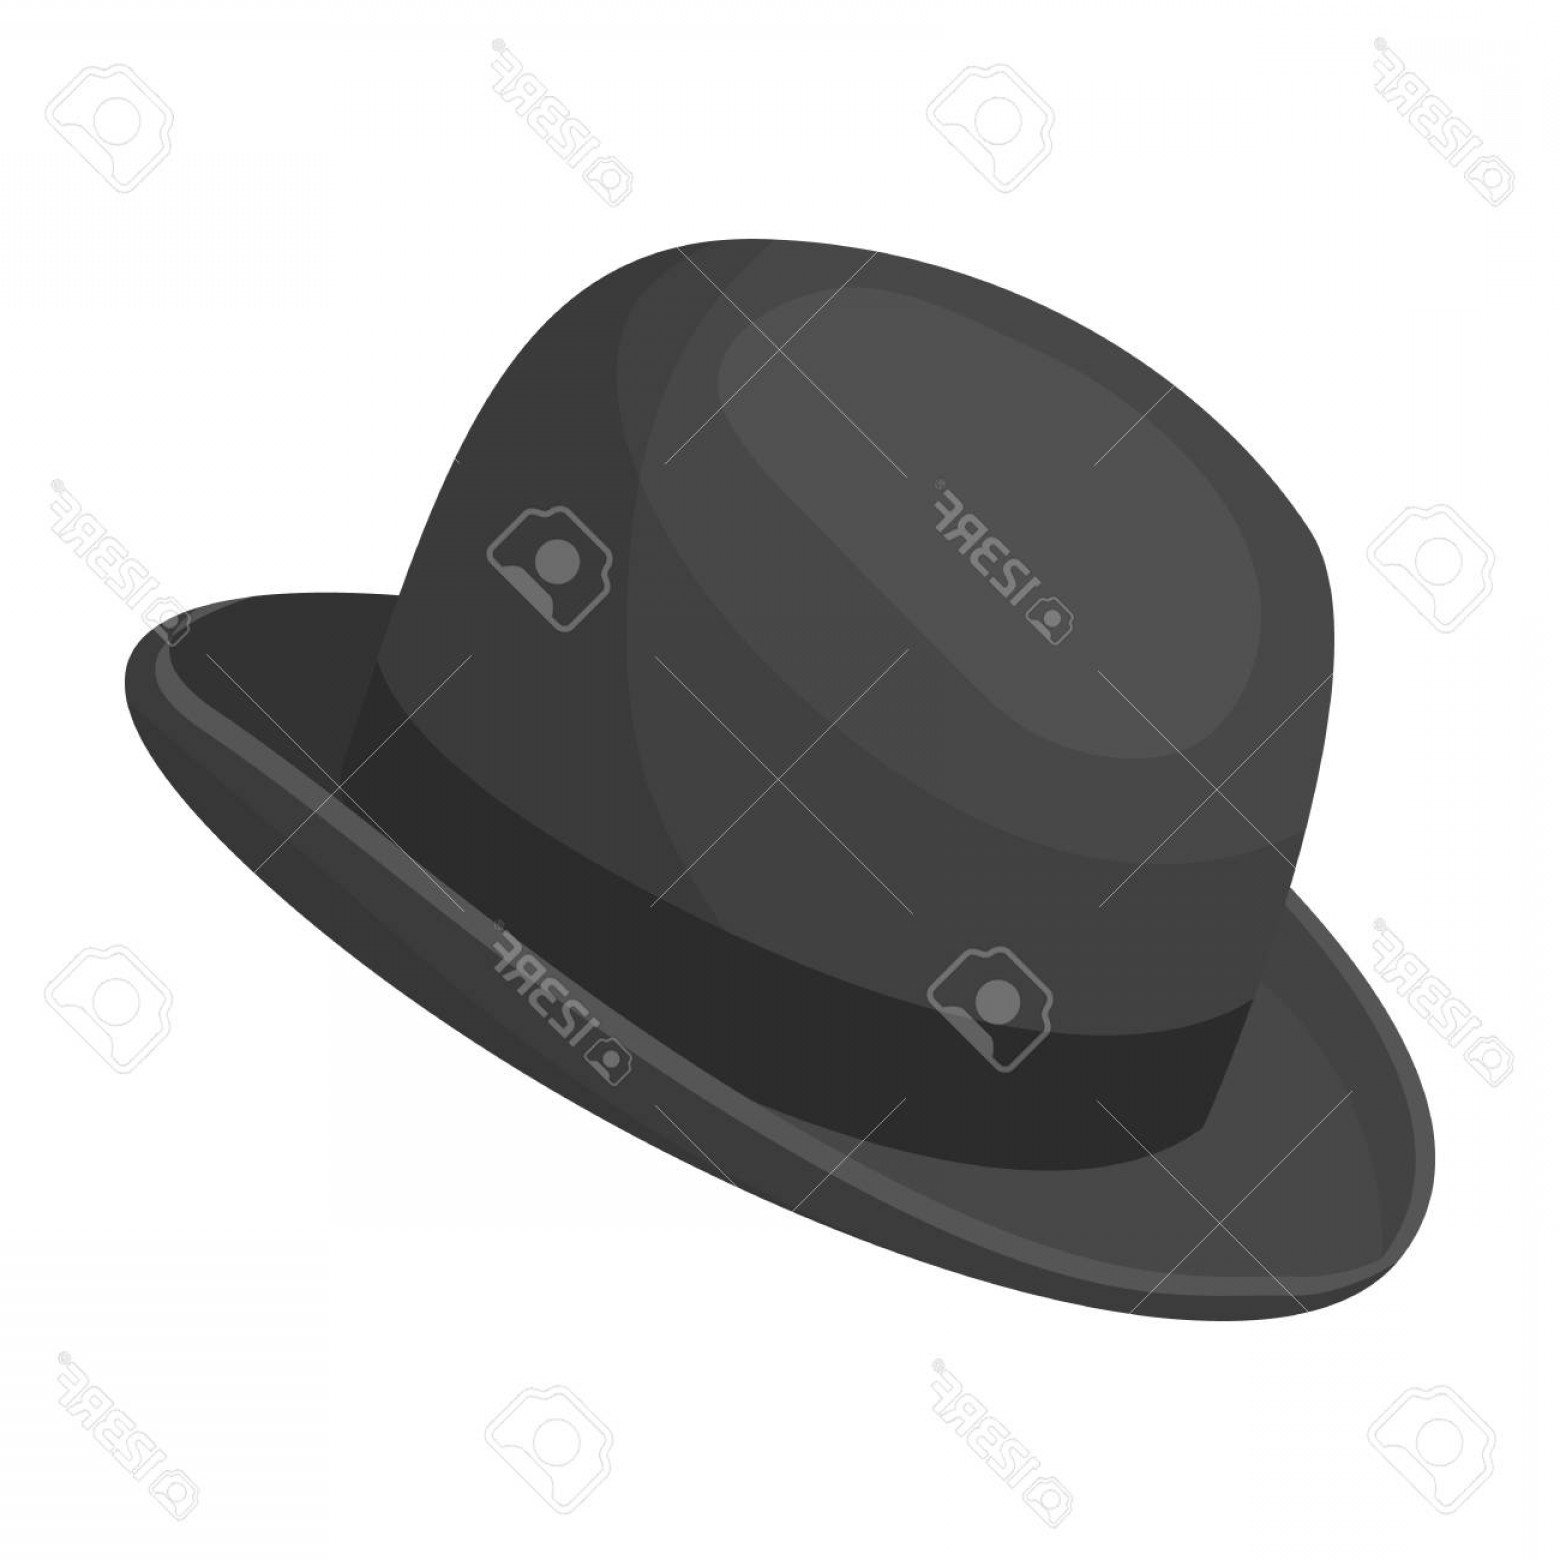 Bowler Hat Vector: Photostock Vector Bowler Hat Icon In Monochrome Style Isolated On White Background Hipster Style Symbol Stock Vector I